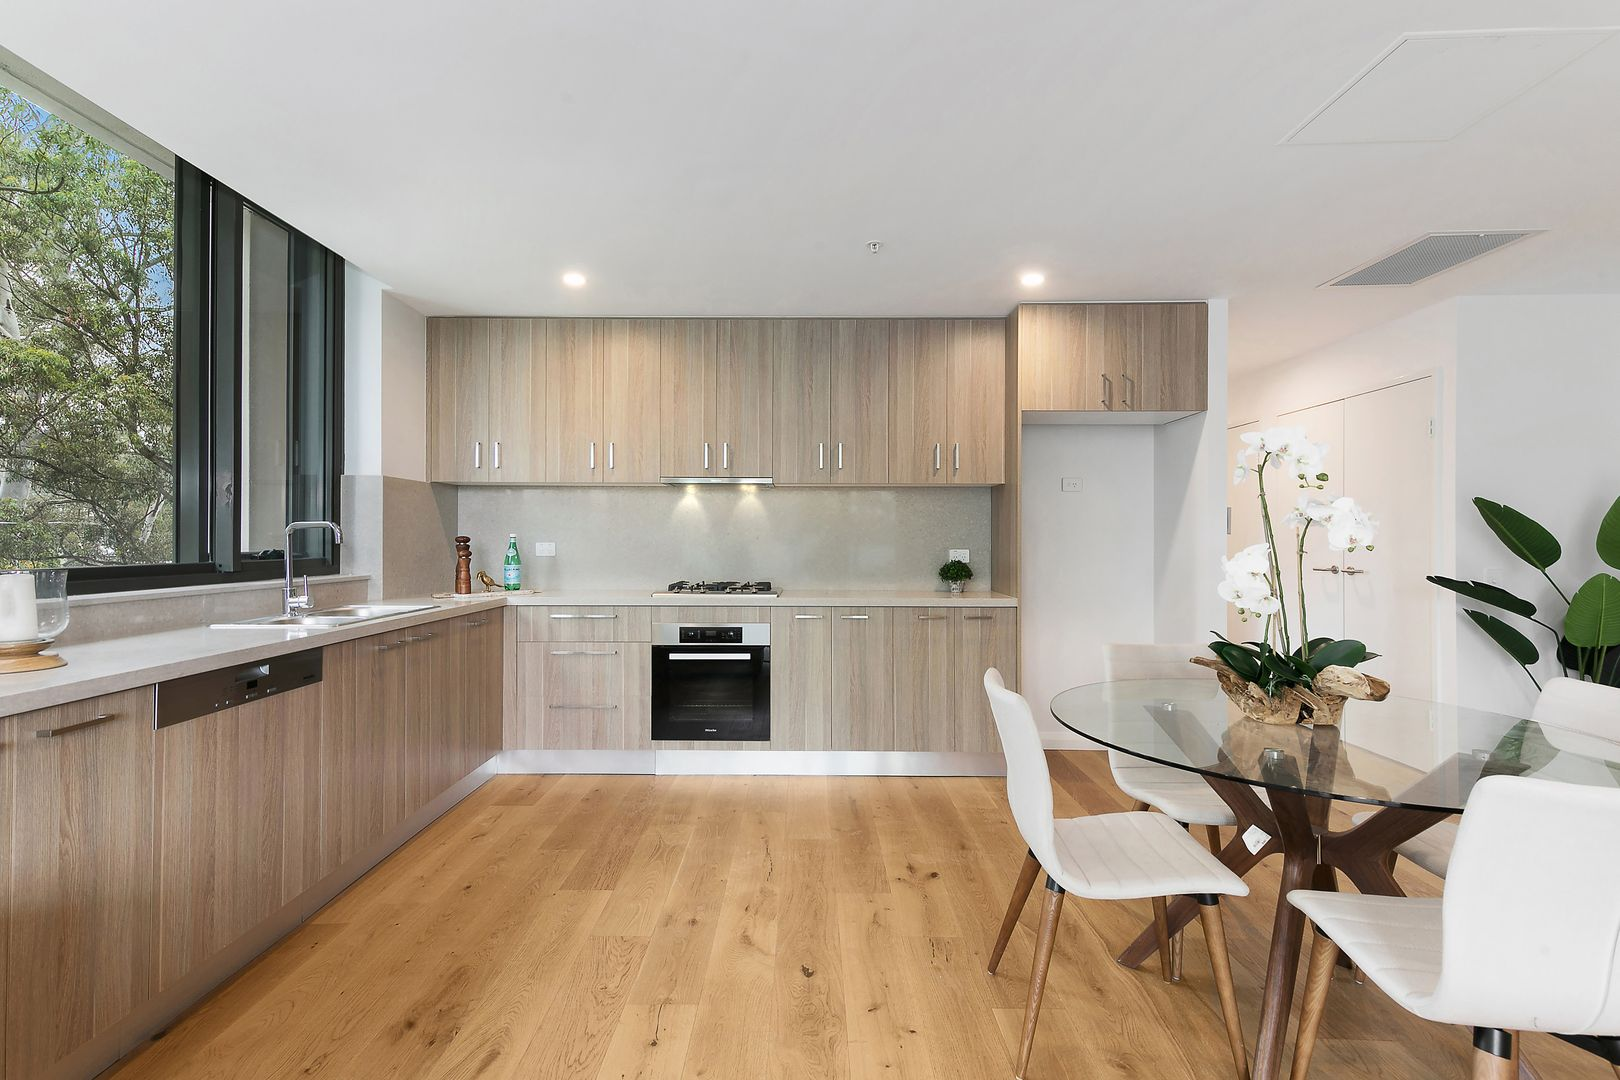 2 Bed/1454 Pacific Highway, Turramurra NSW 2074, Image 1